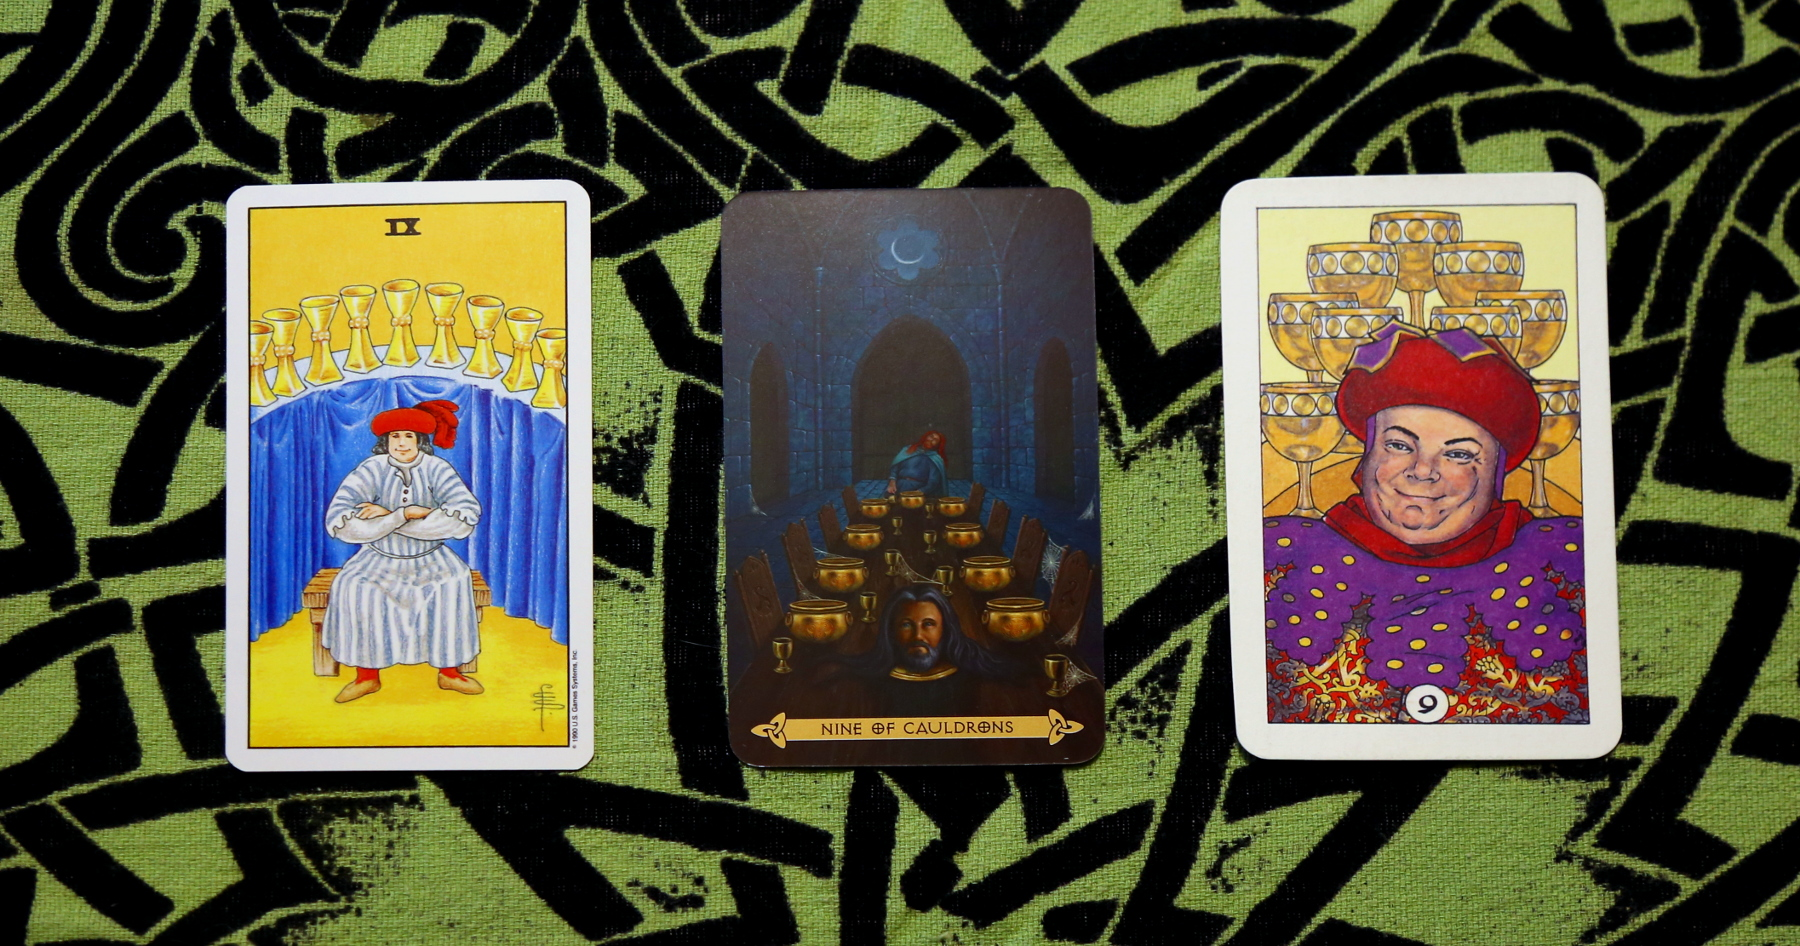 the Nine of Cups in the Rider-Waite-Smith Tarot, the Nine of Cauldrons in the Celtic Tarot, and the Nine of Cups in the Robin Wood Tarot